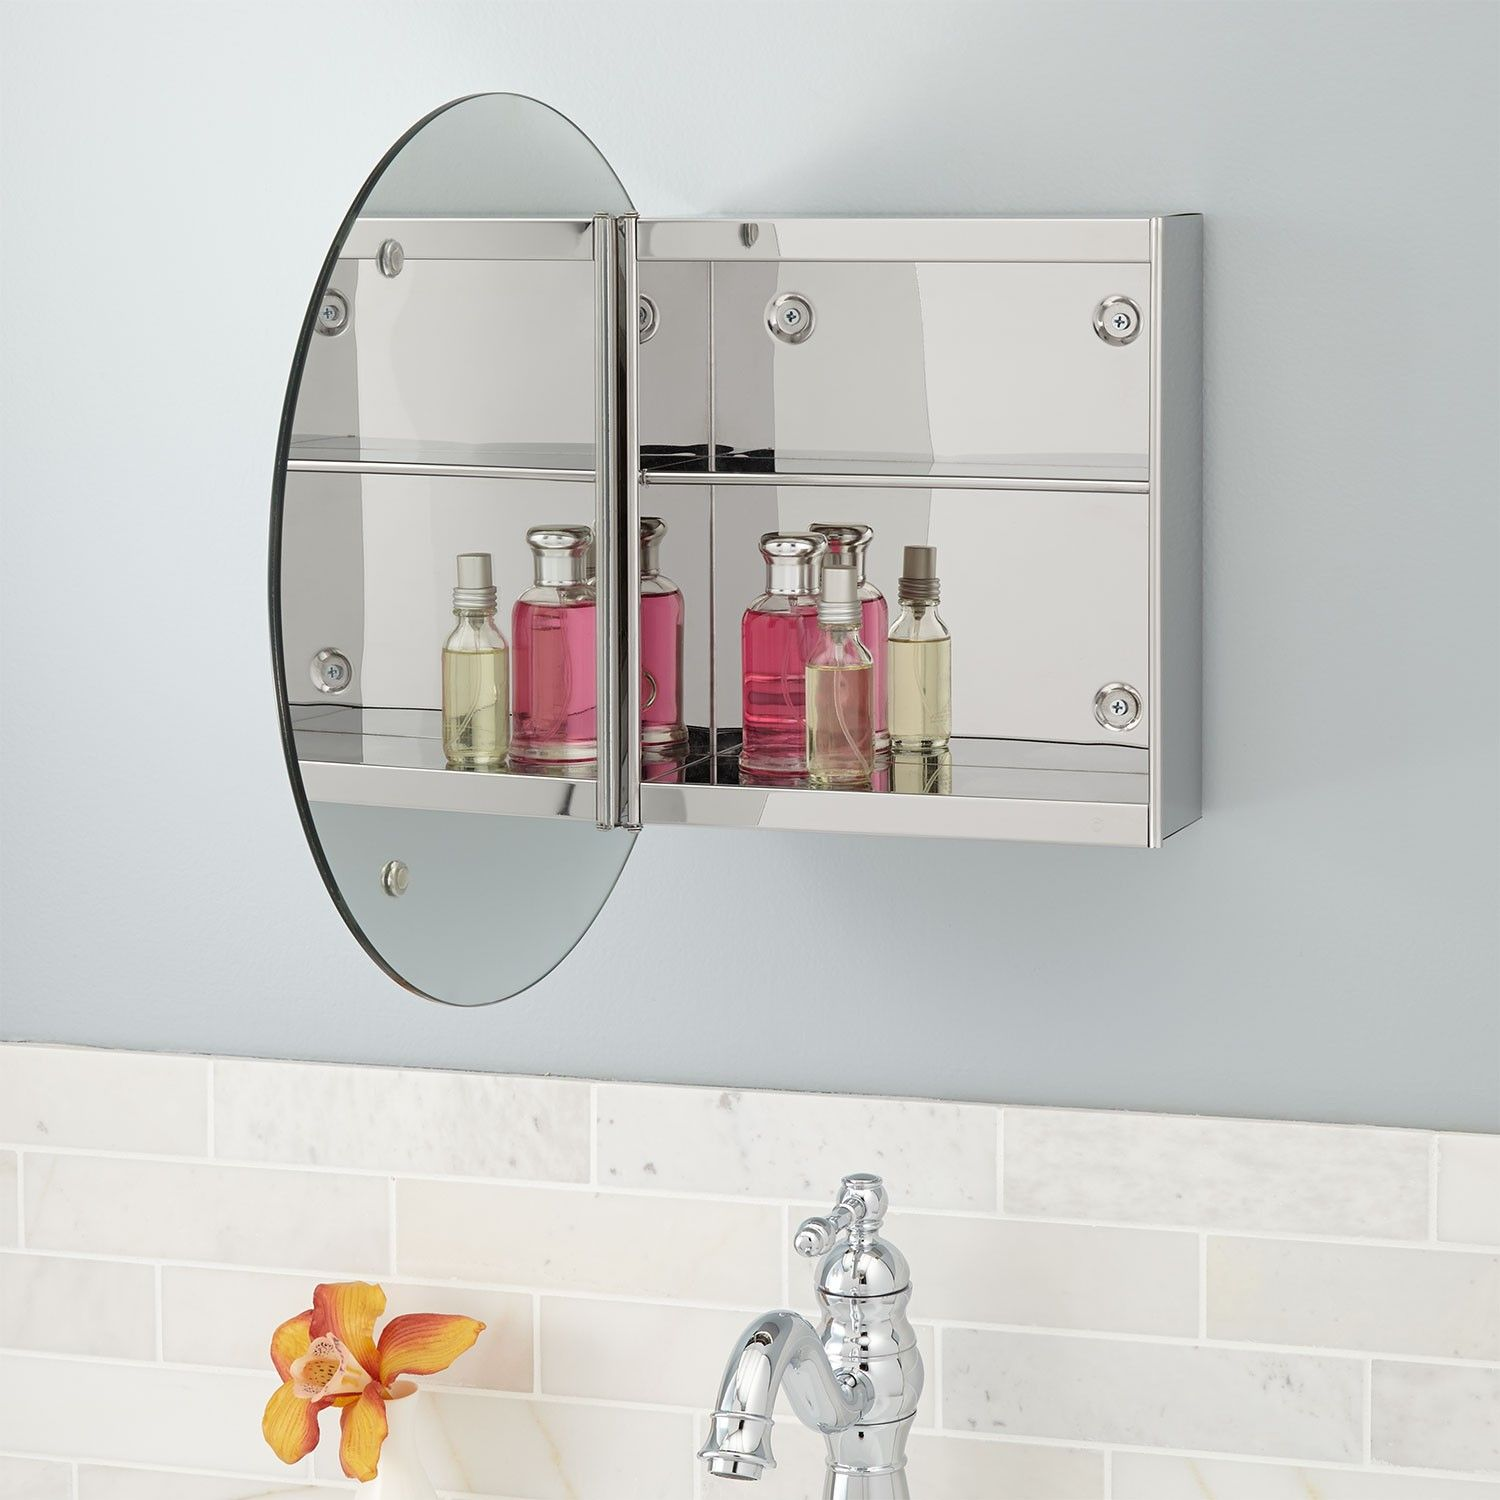 Stainless Steel Mirrored Bathroom Cabinets Showcase Series Stainless Steel Medicine Cabinet With